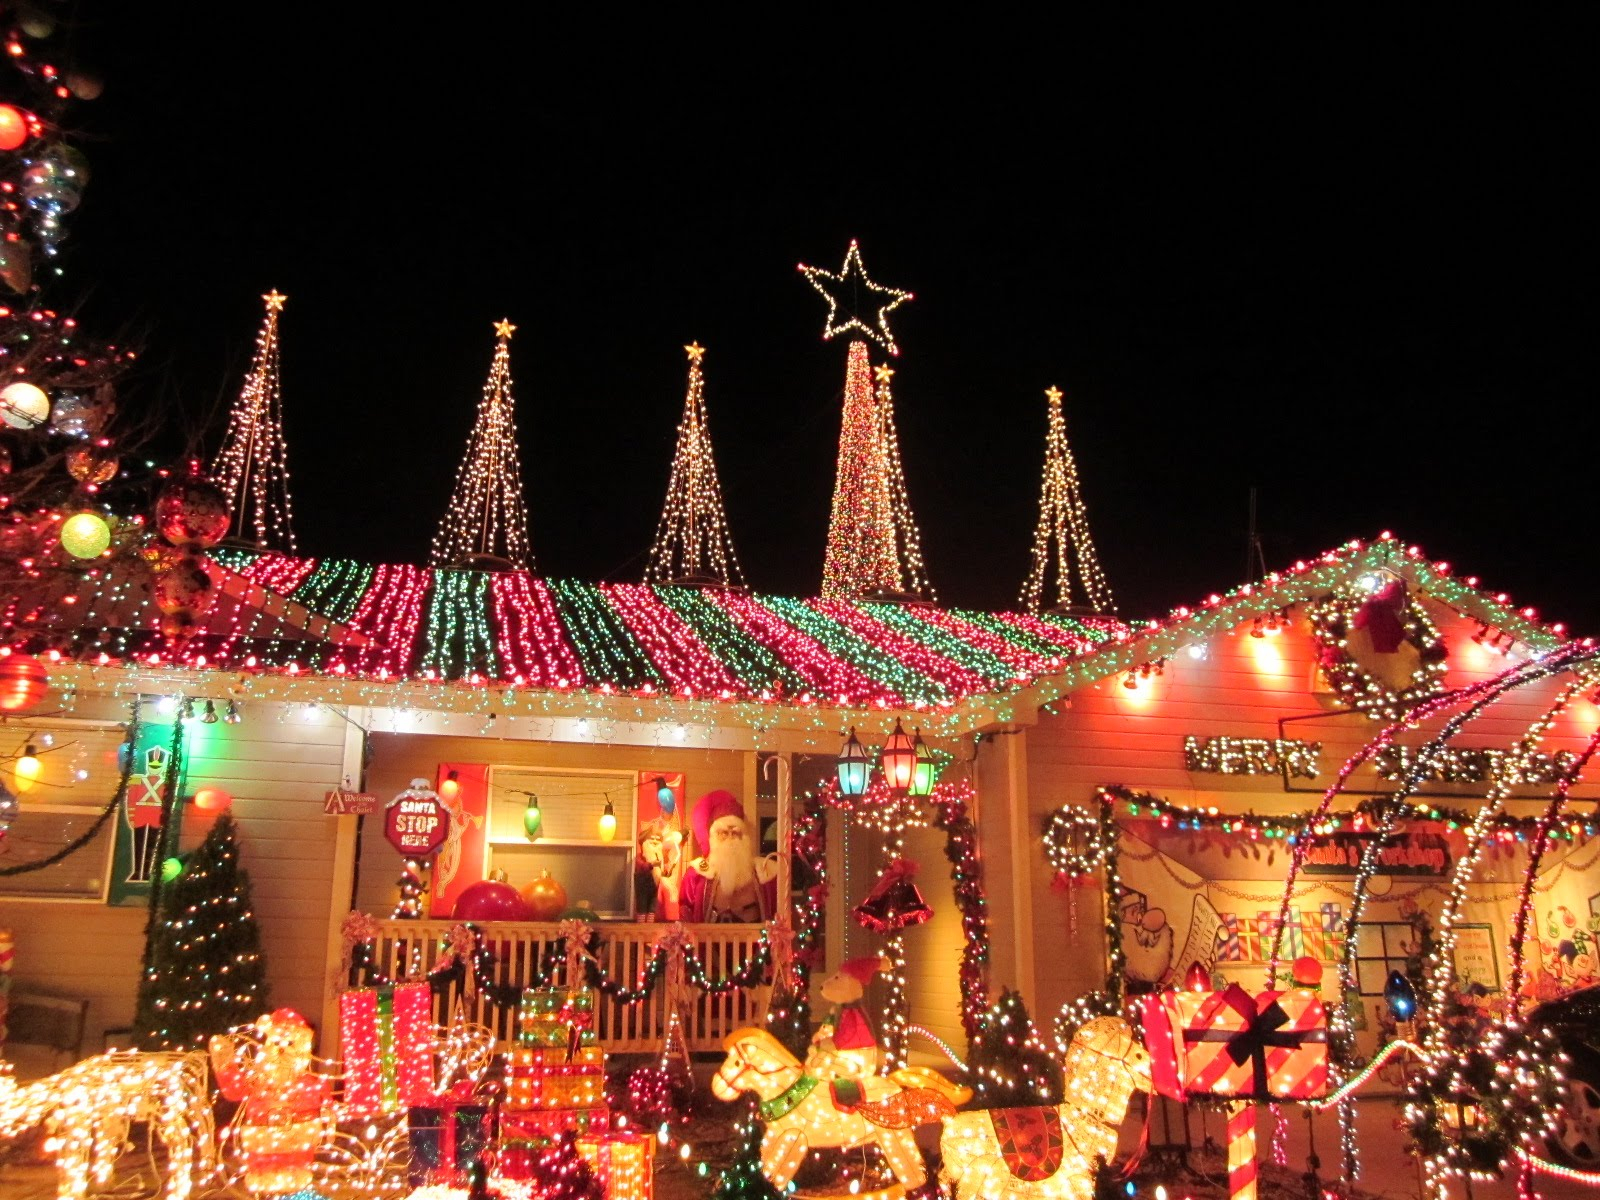 Christmas In Houston Christmas Lights Events Zoo Installation intended for size 1600 X 1200